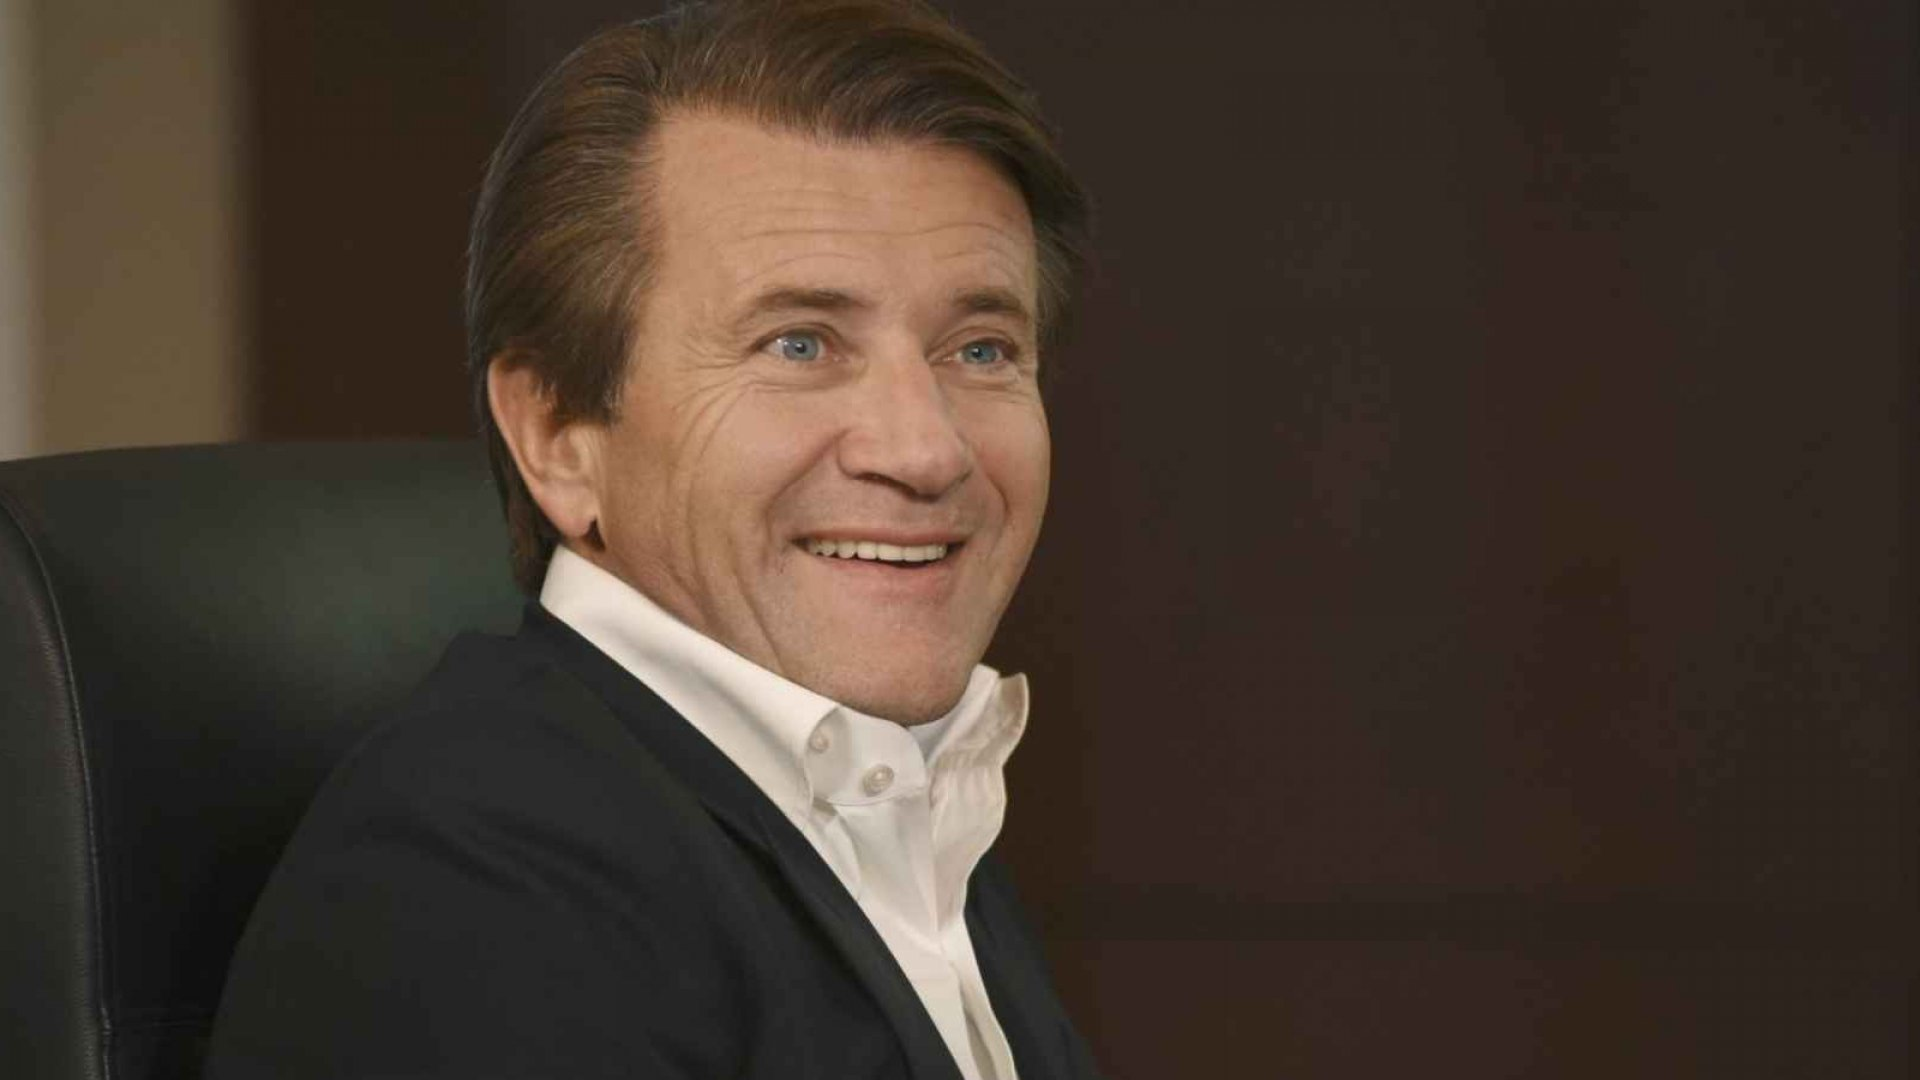 10 Tips From Robert Herjavec on Building a Business